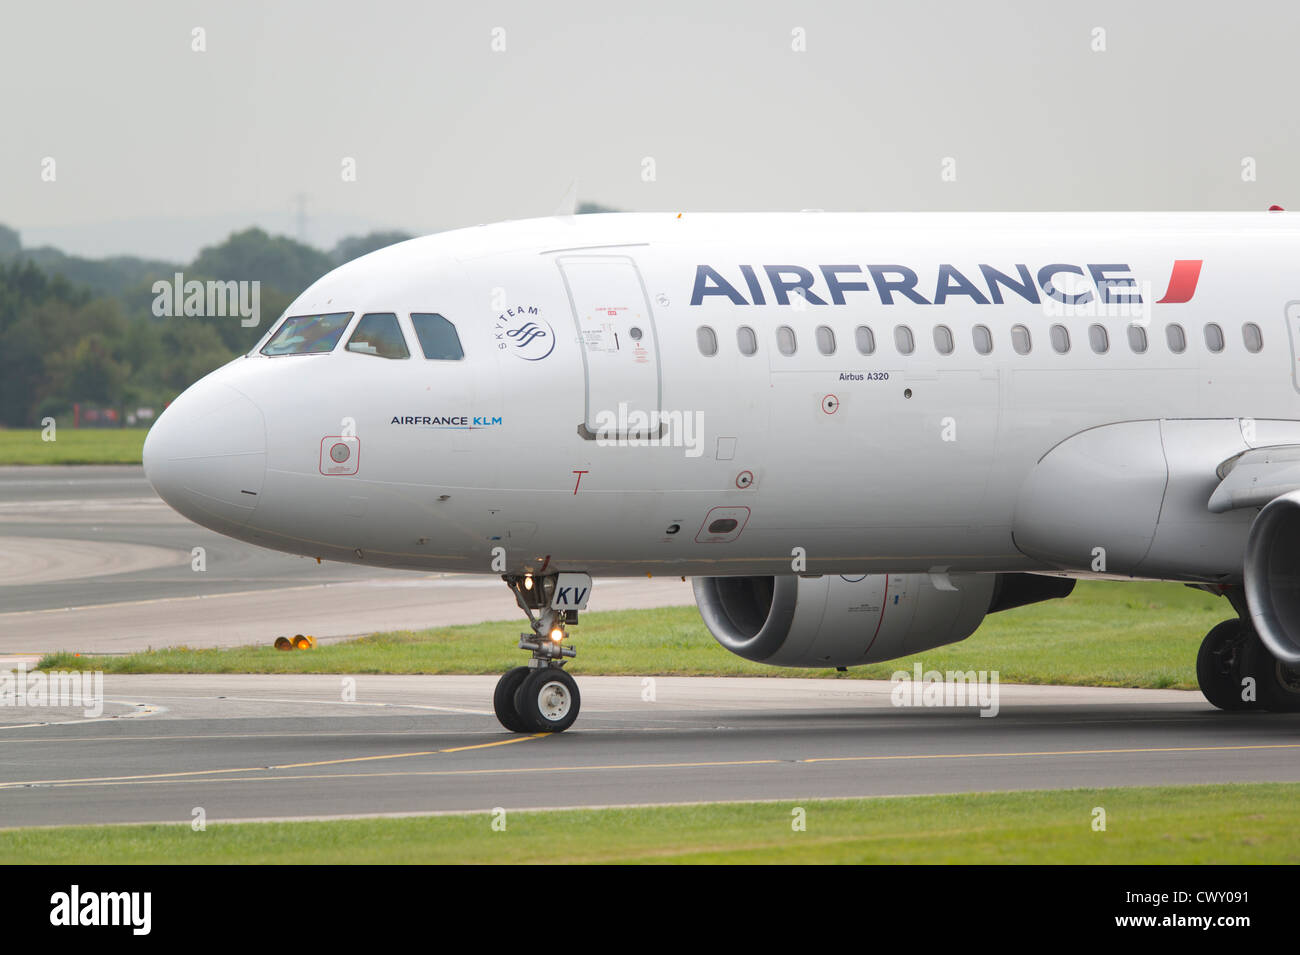 An Air France Airbus A320 taxiing on the runway of Manchester International Airport (Editorial use only) - Stock Image